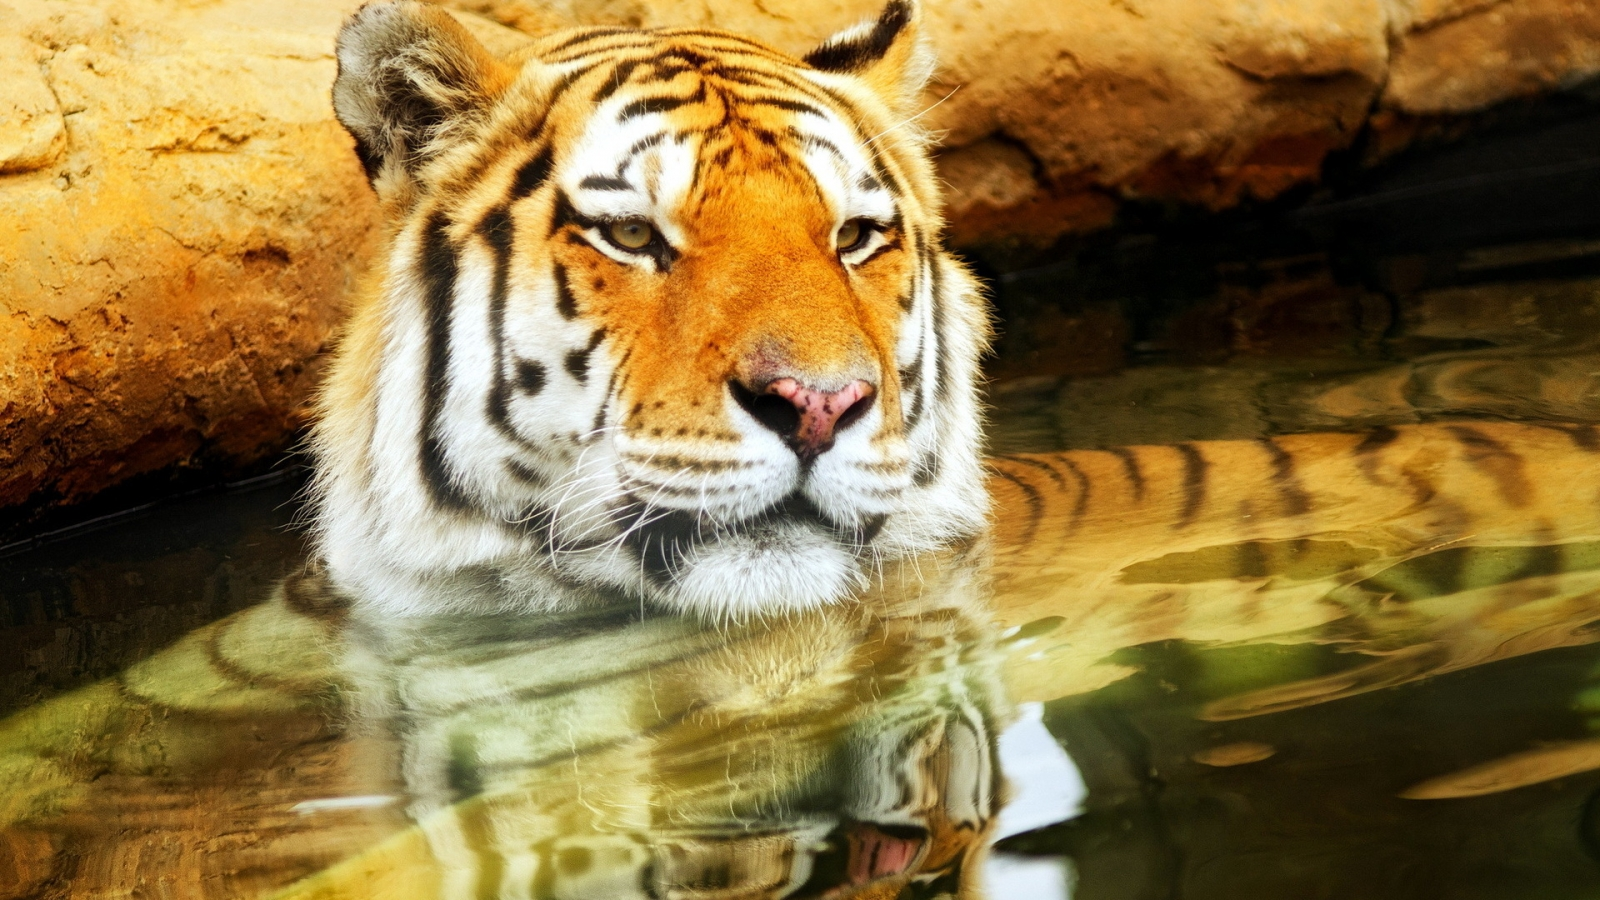 Cute Young Tiger for 1600 x 900 HDTV resolution